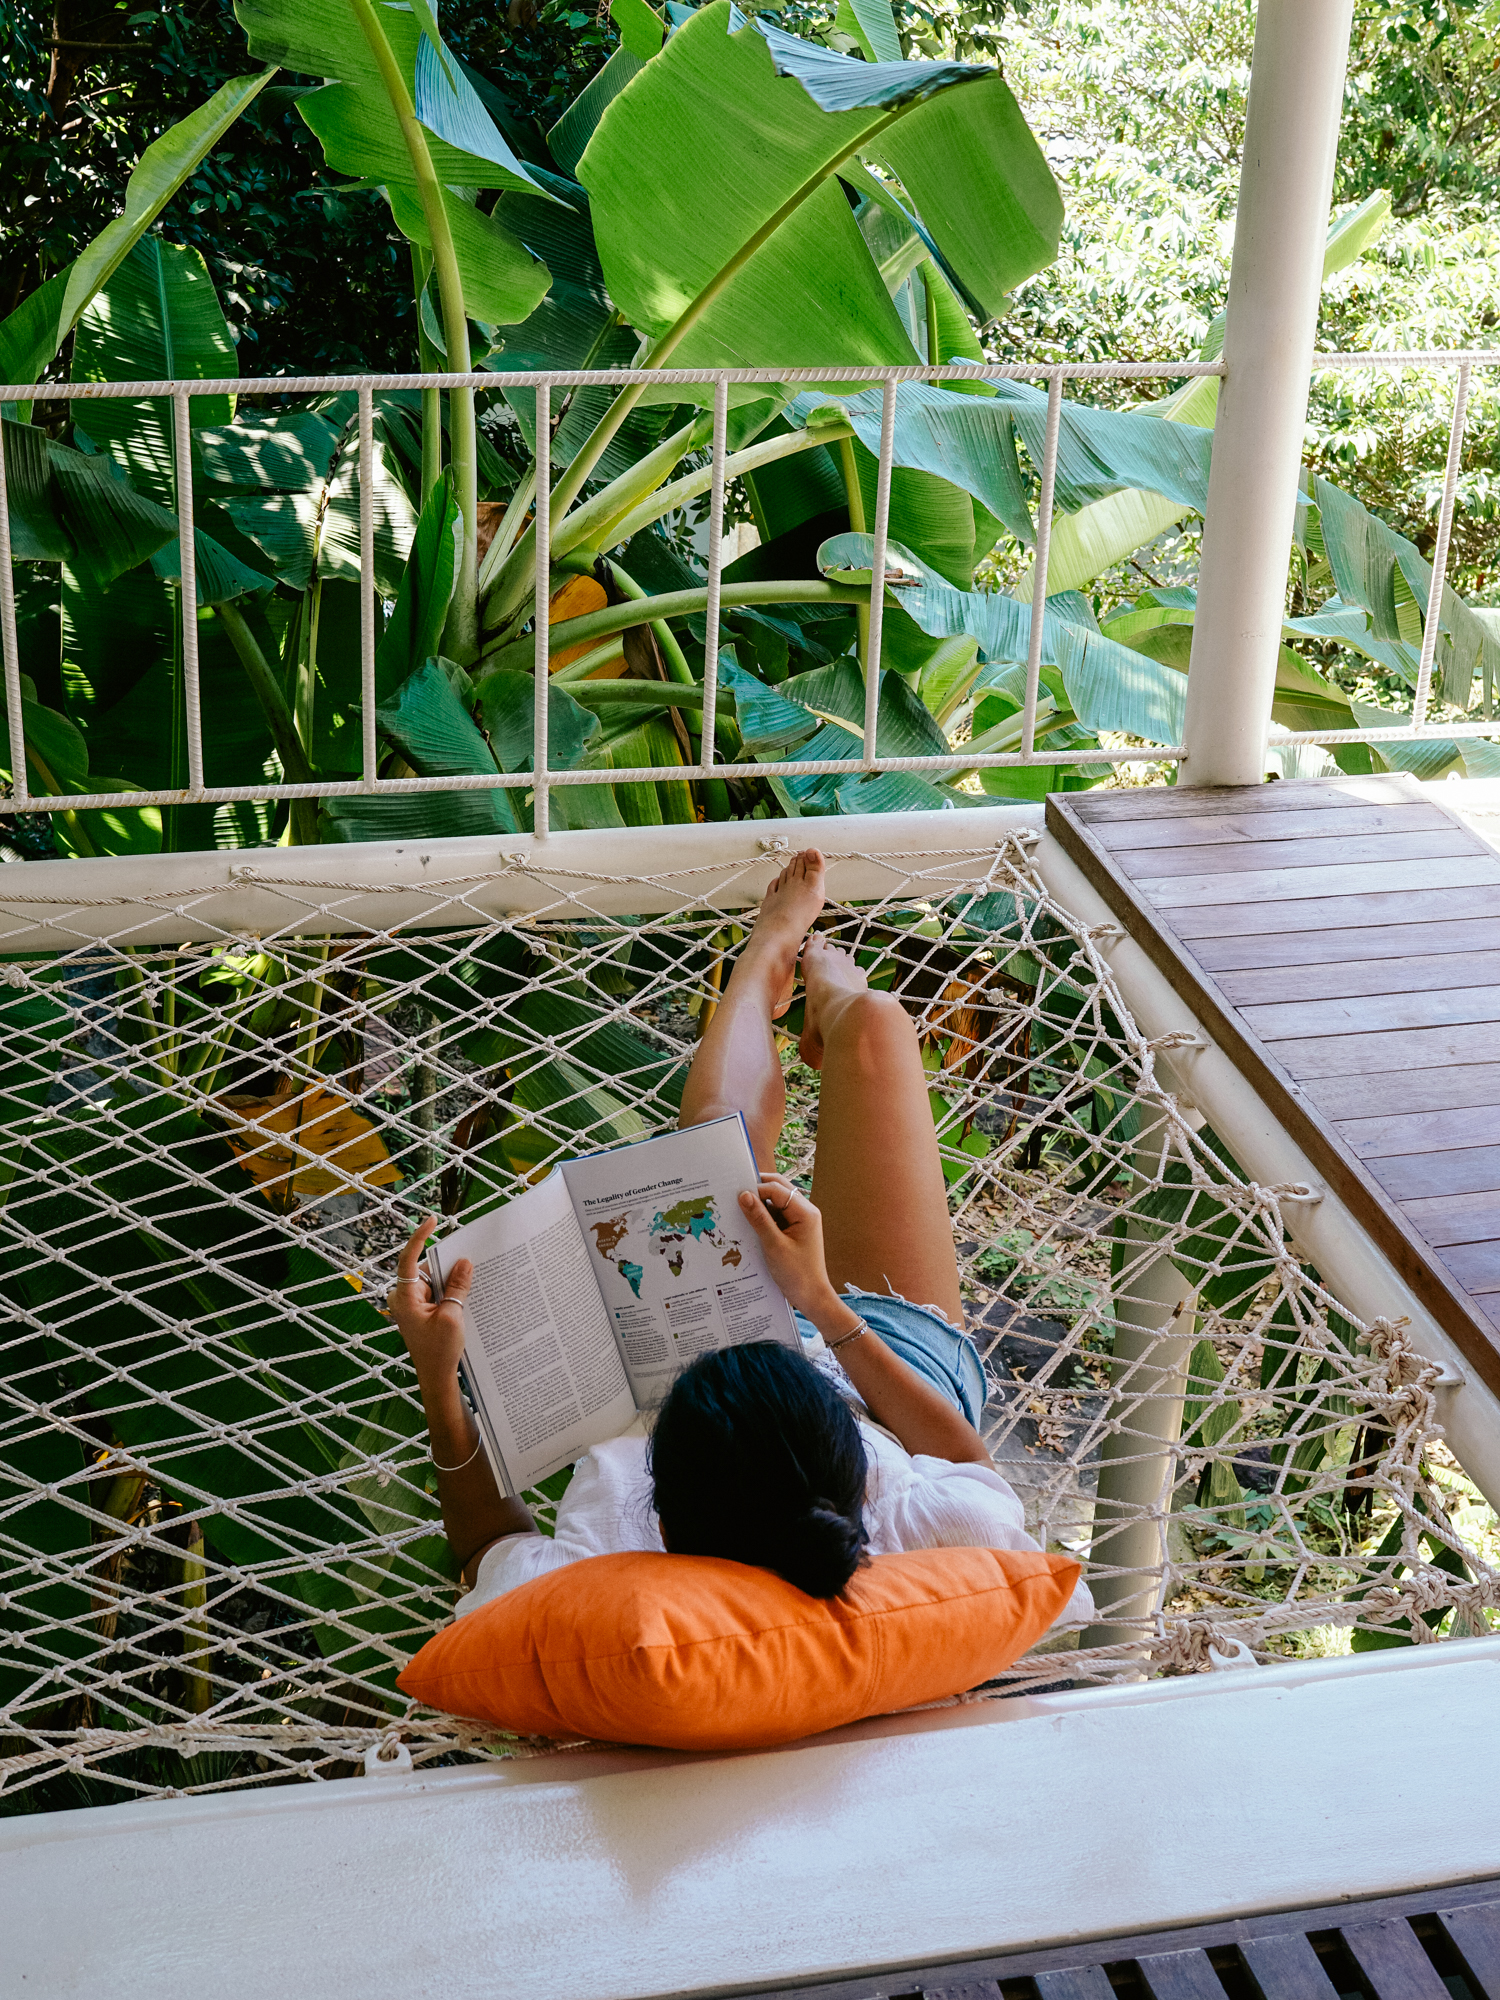 A guide on Phu Quoc Island, 88 Hilltop Hostel